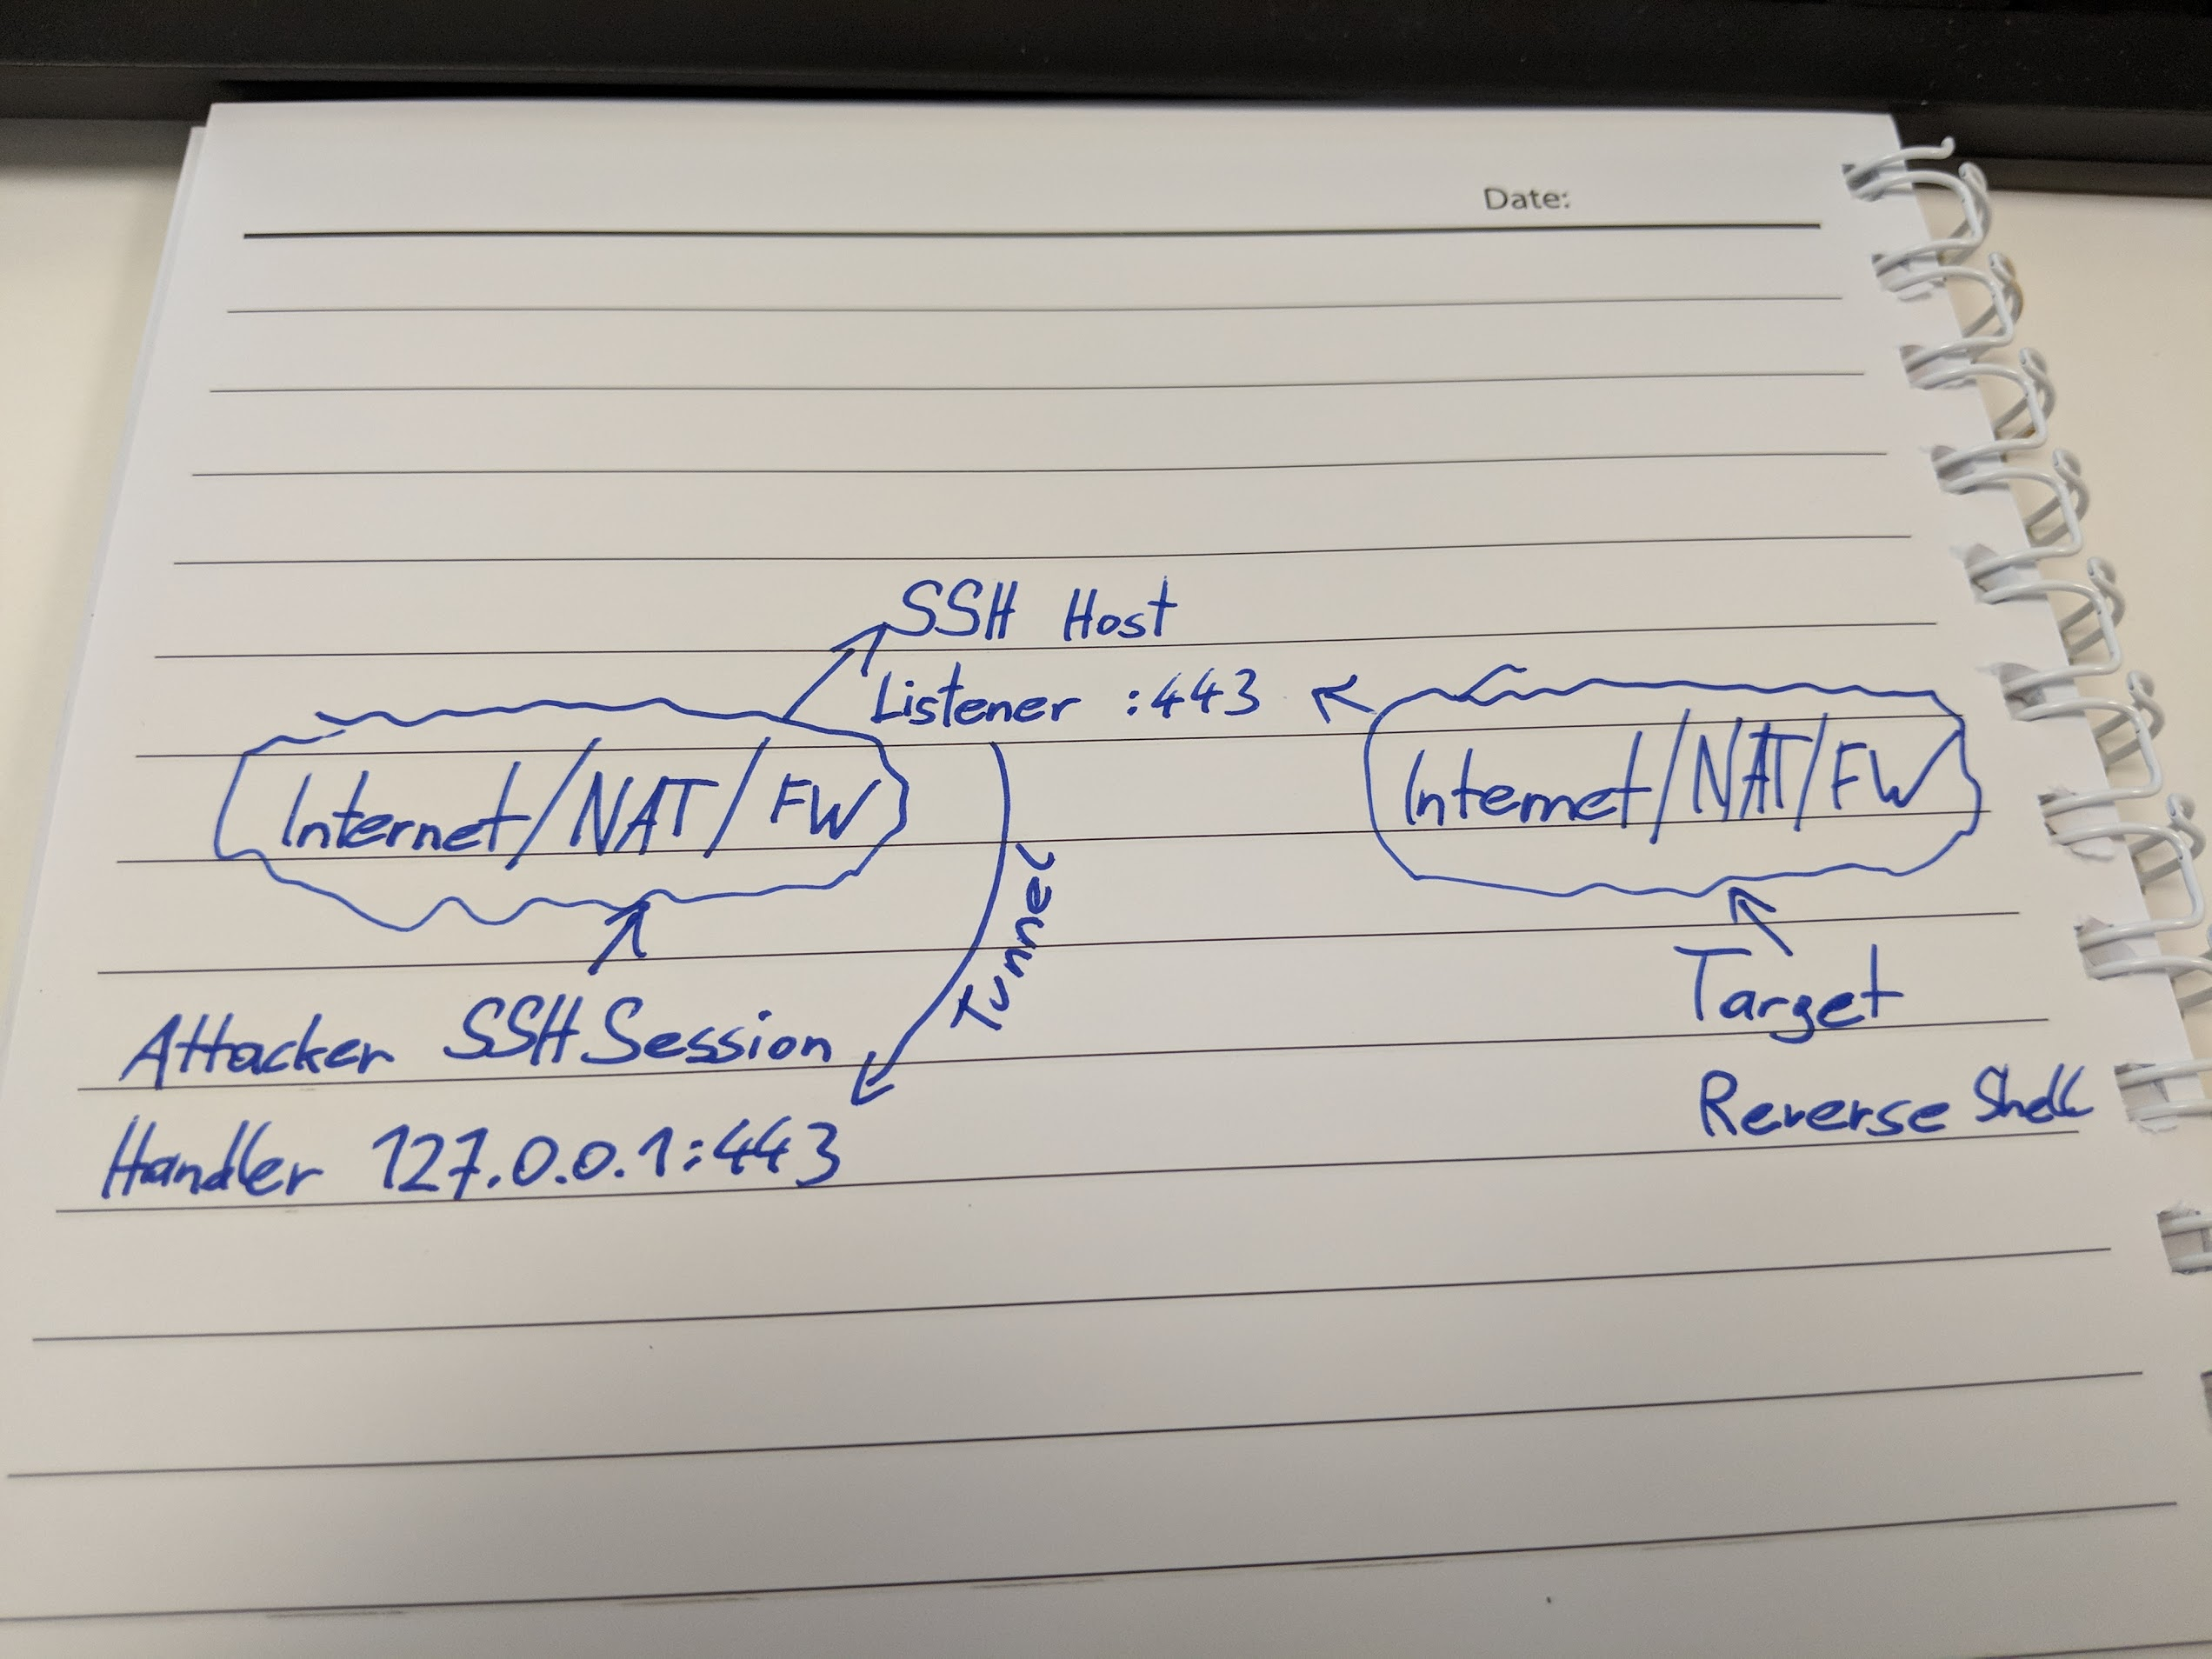 How to Metasploit Behind a NAT or: Pivoting and Reverse